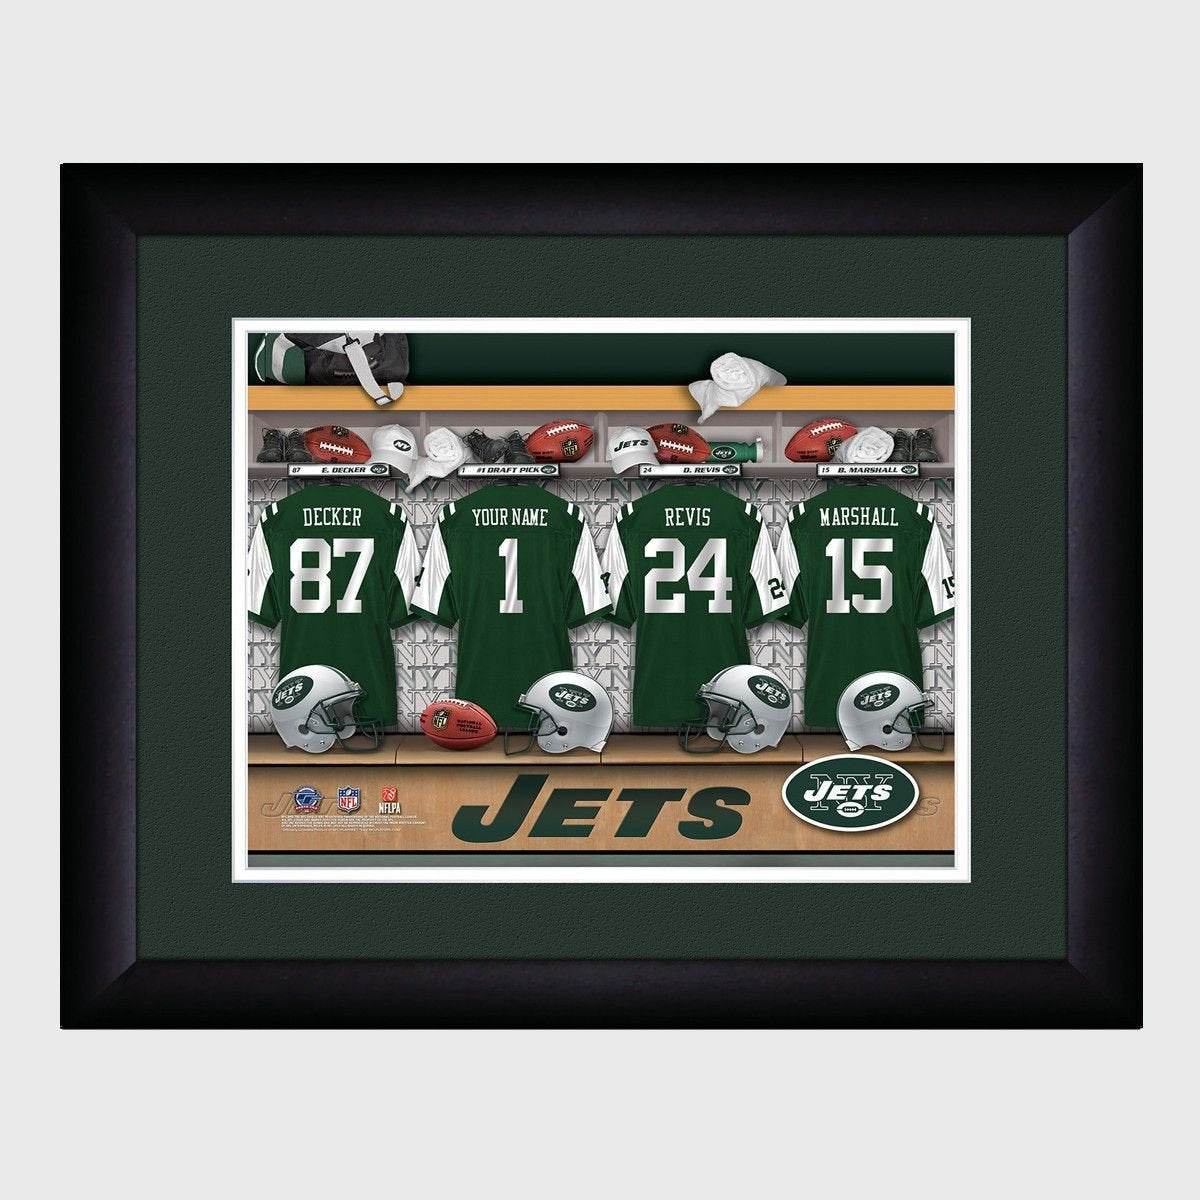 Personalized NFL Locker Room Print - New York Jets